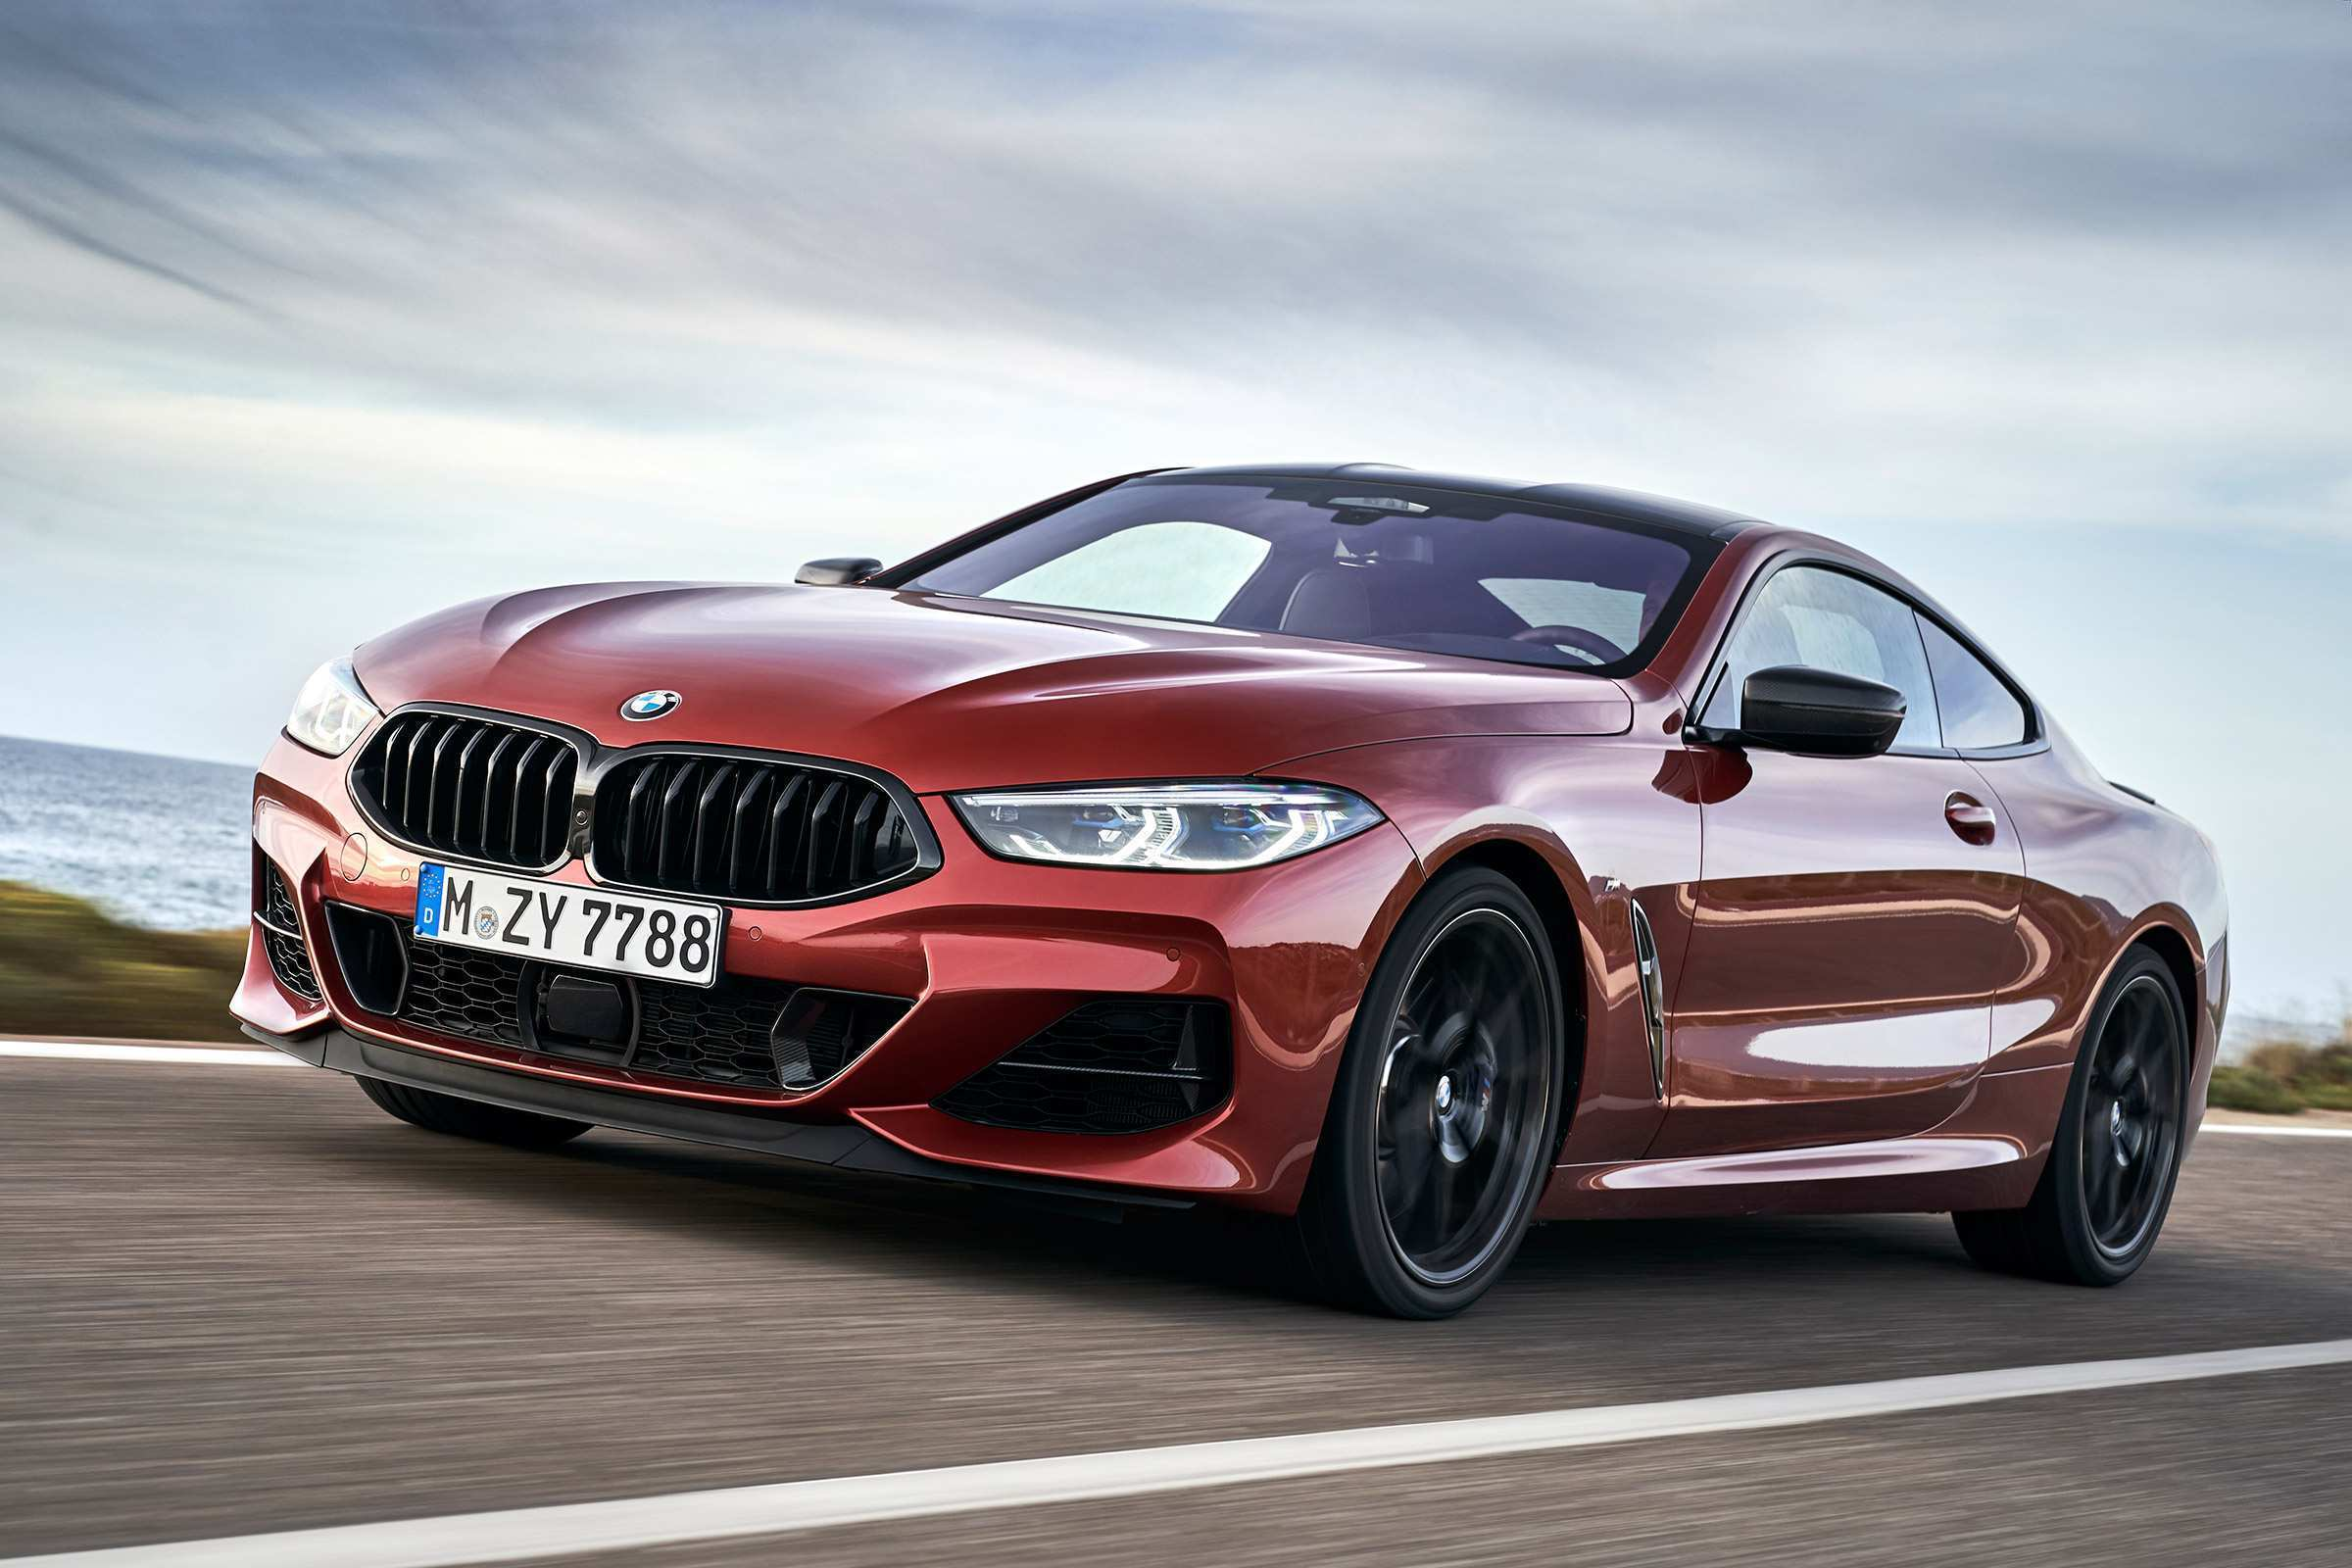 56 New 2019 Bmw 8 Series Review Price by 2019 Bmw 8 Series Review